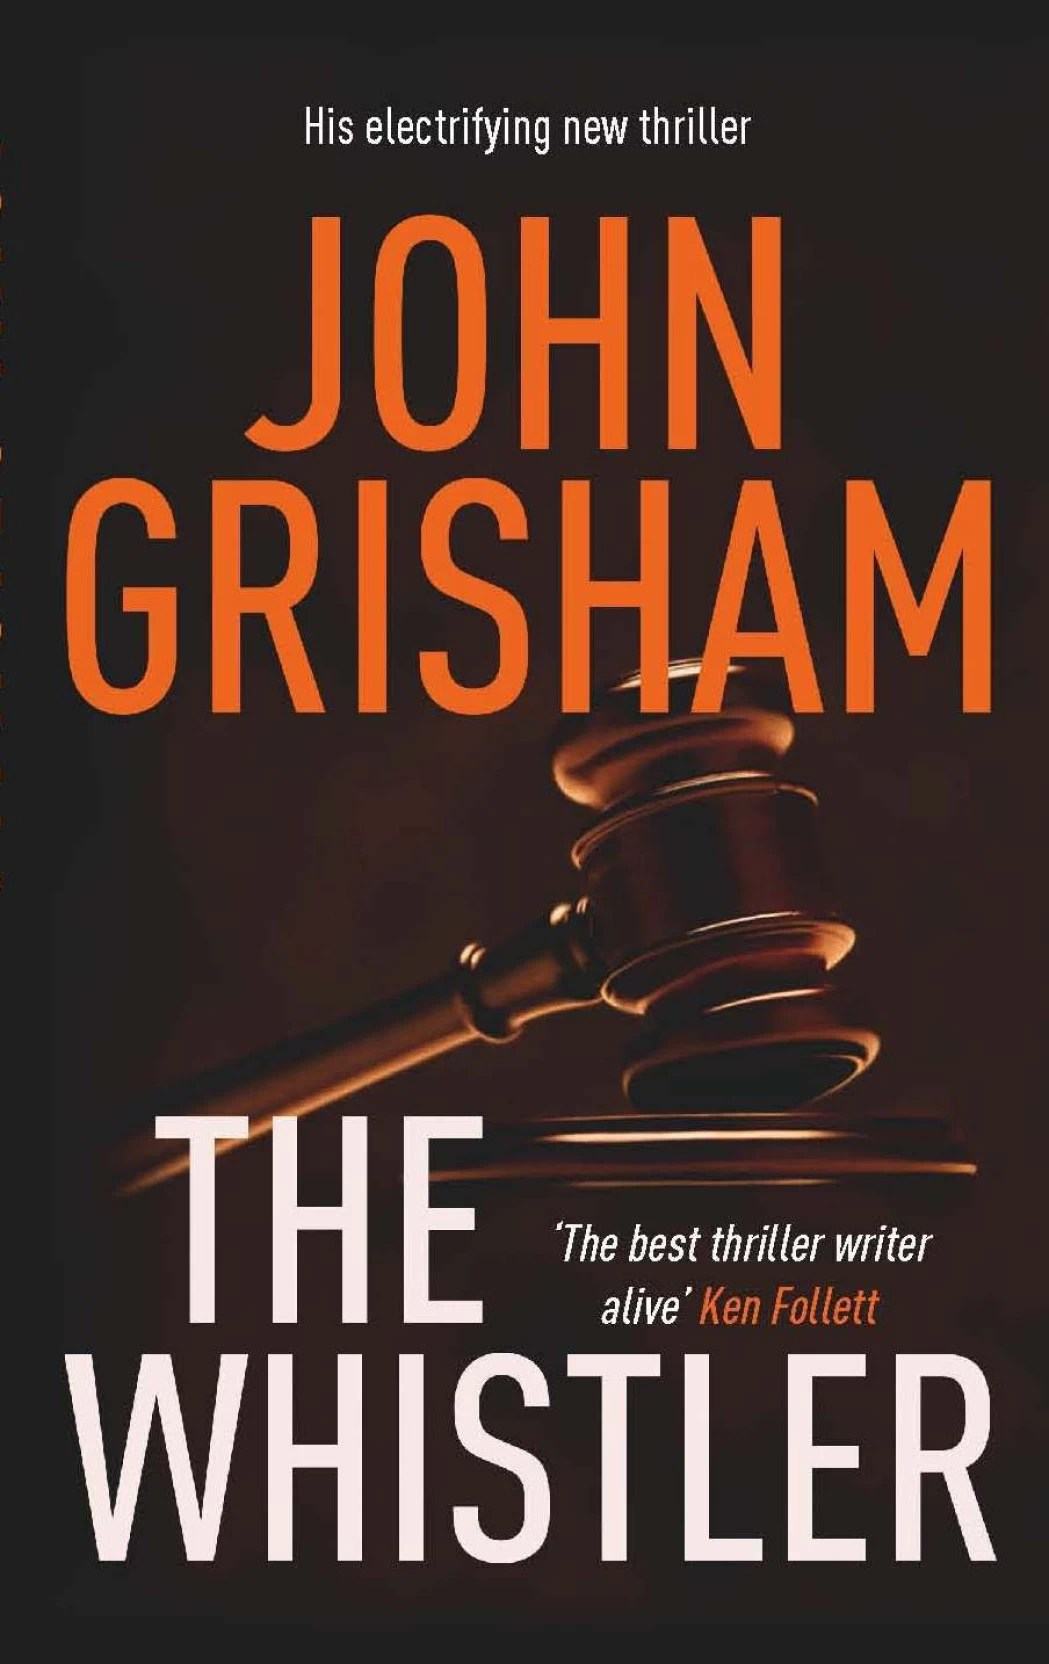 Camino Island Paperback Release Date The Whistler Buy The Whistler By John Grisham At Low Price In